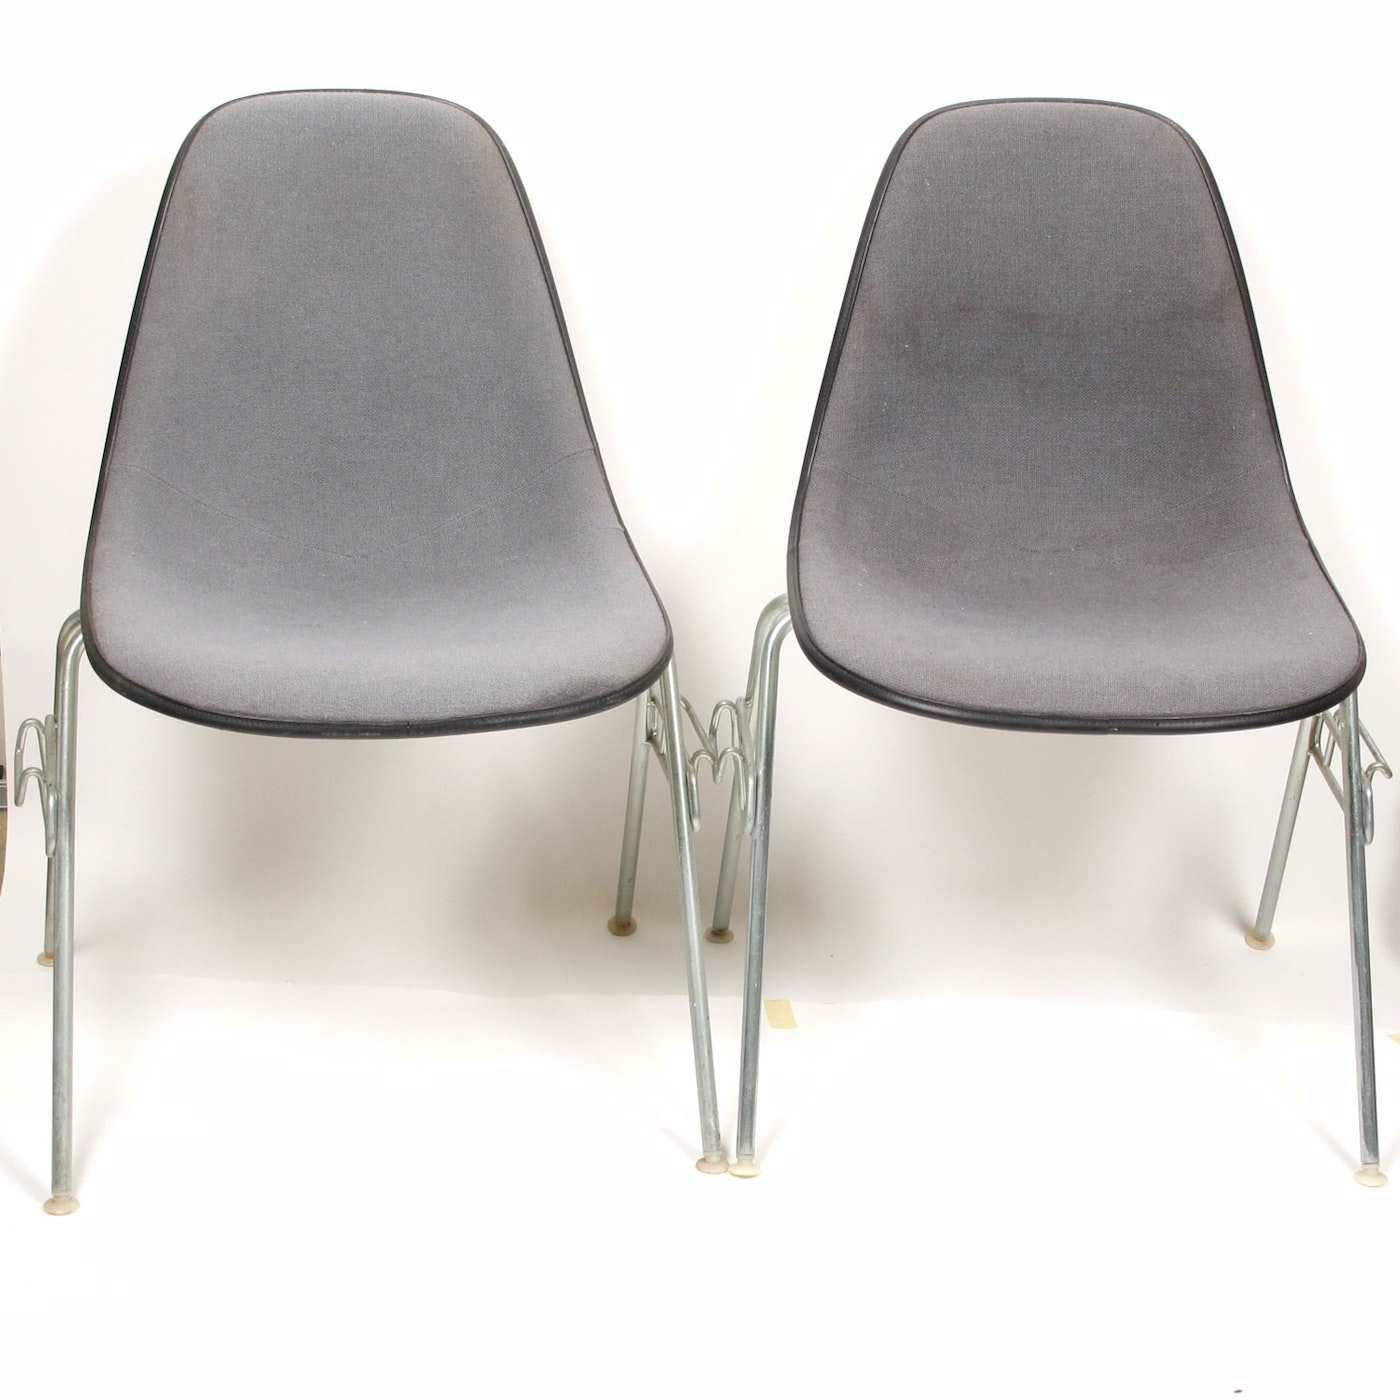 Mg Ixlib Rb Fit Max Crop Eames House Sell Vintage Furniture